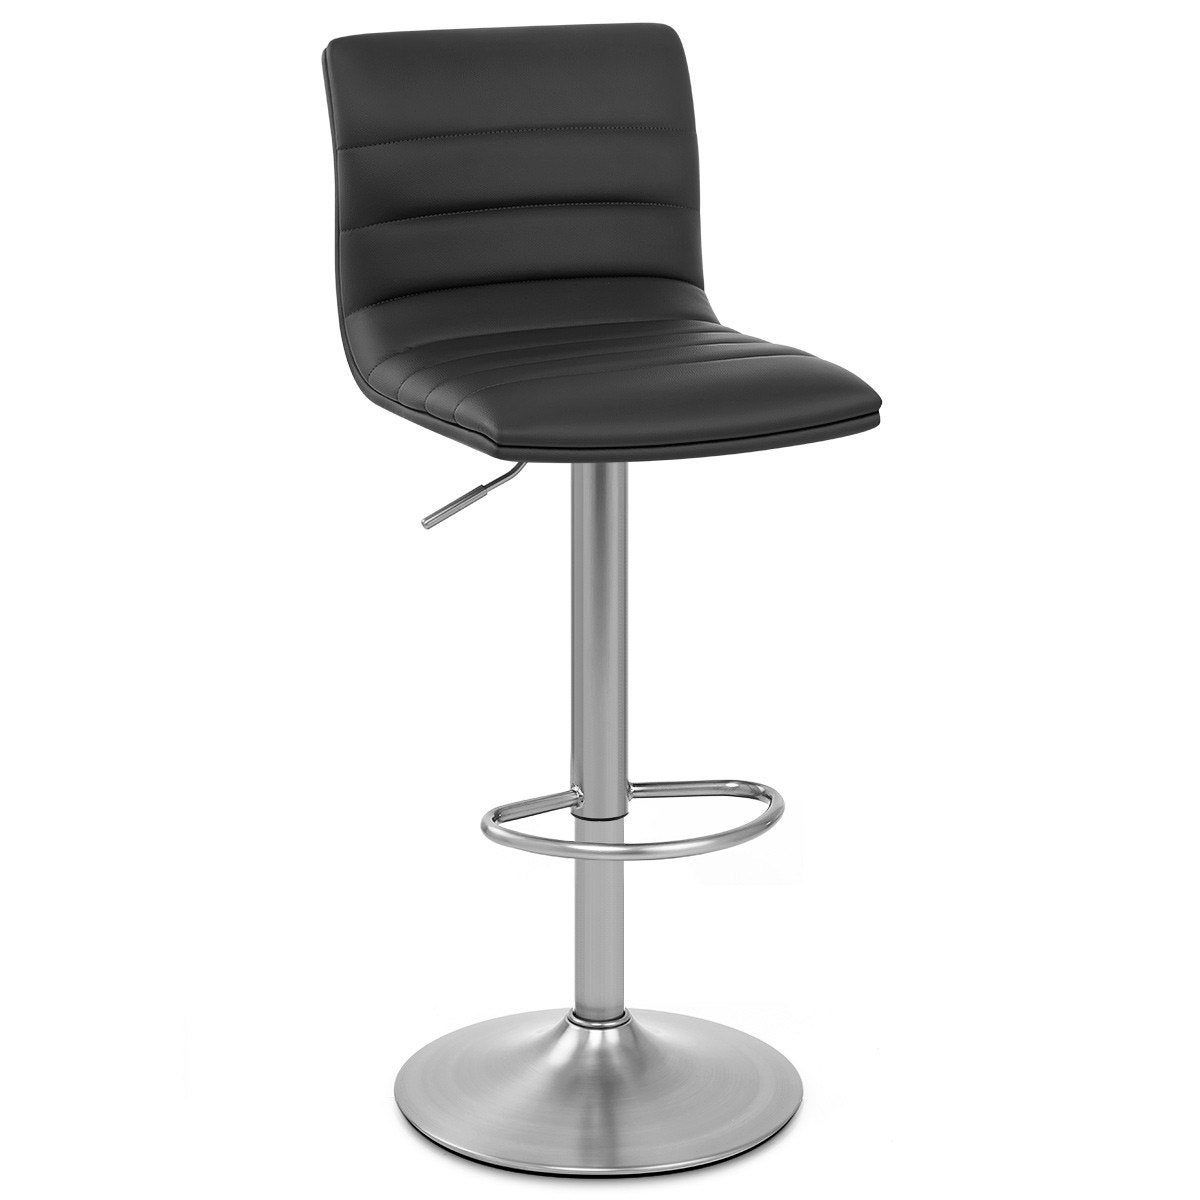 Tabouret De Bar Chic Simili Cuir Noir Linear Bar Chic Tabouret Et Simili Cuir